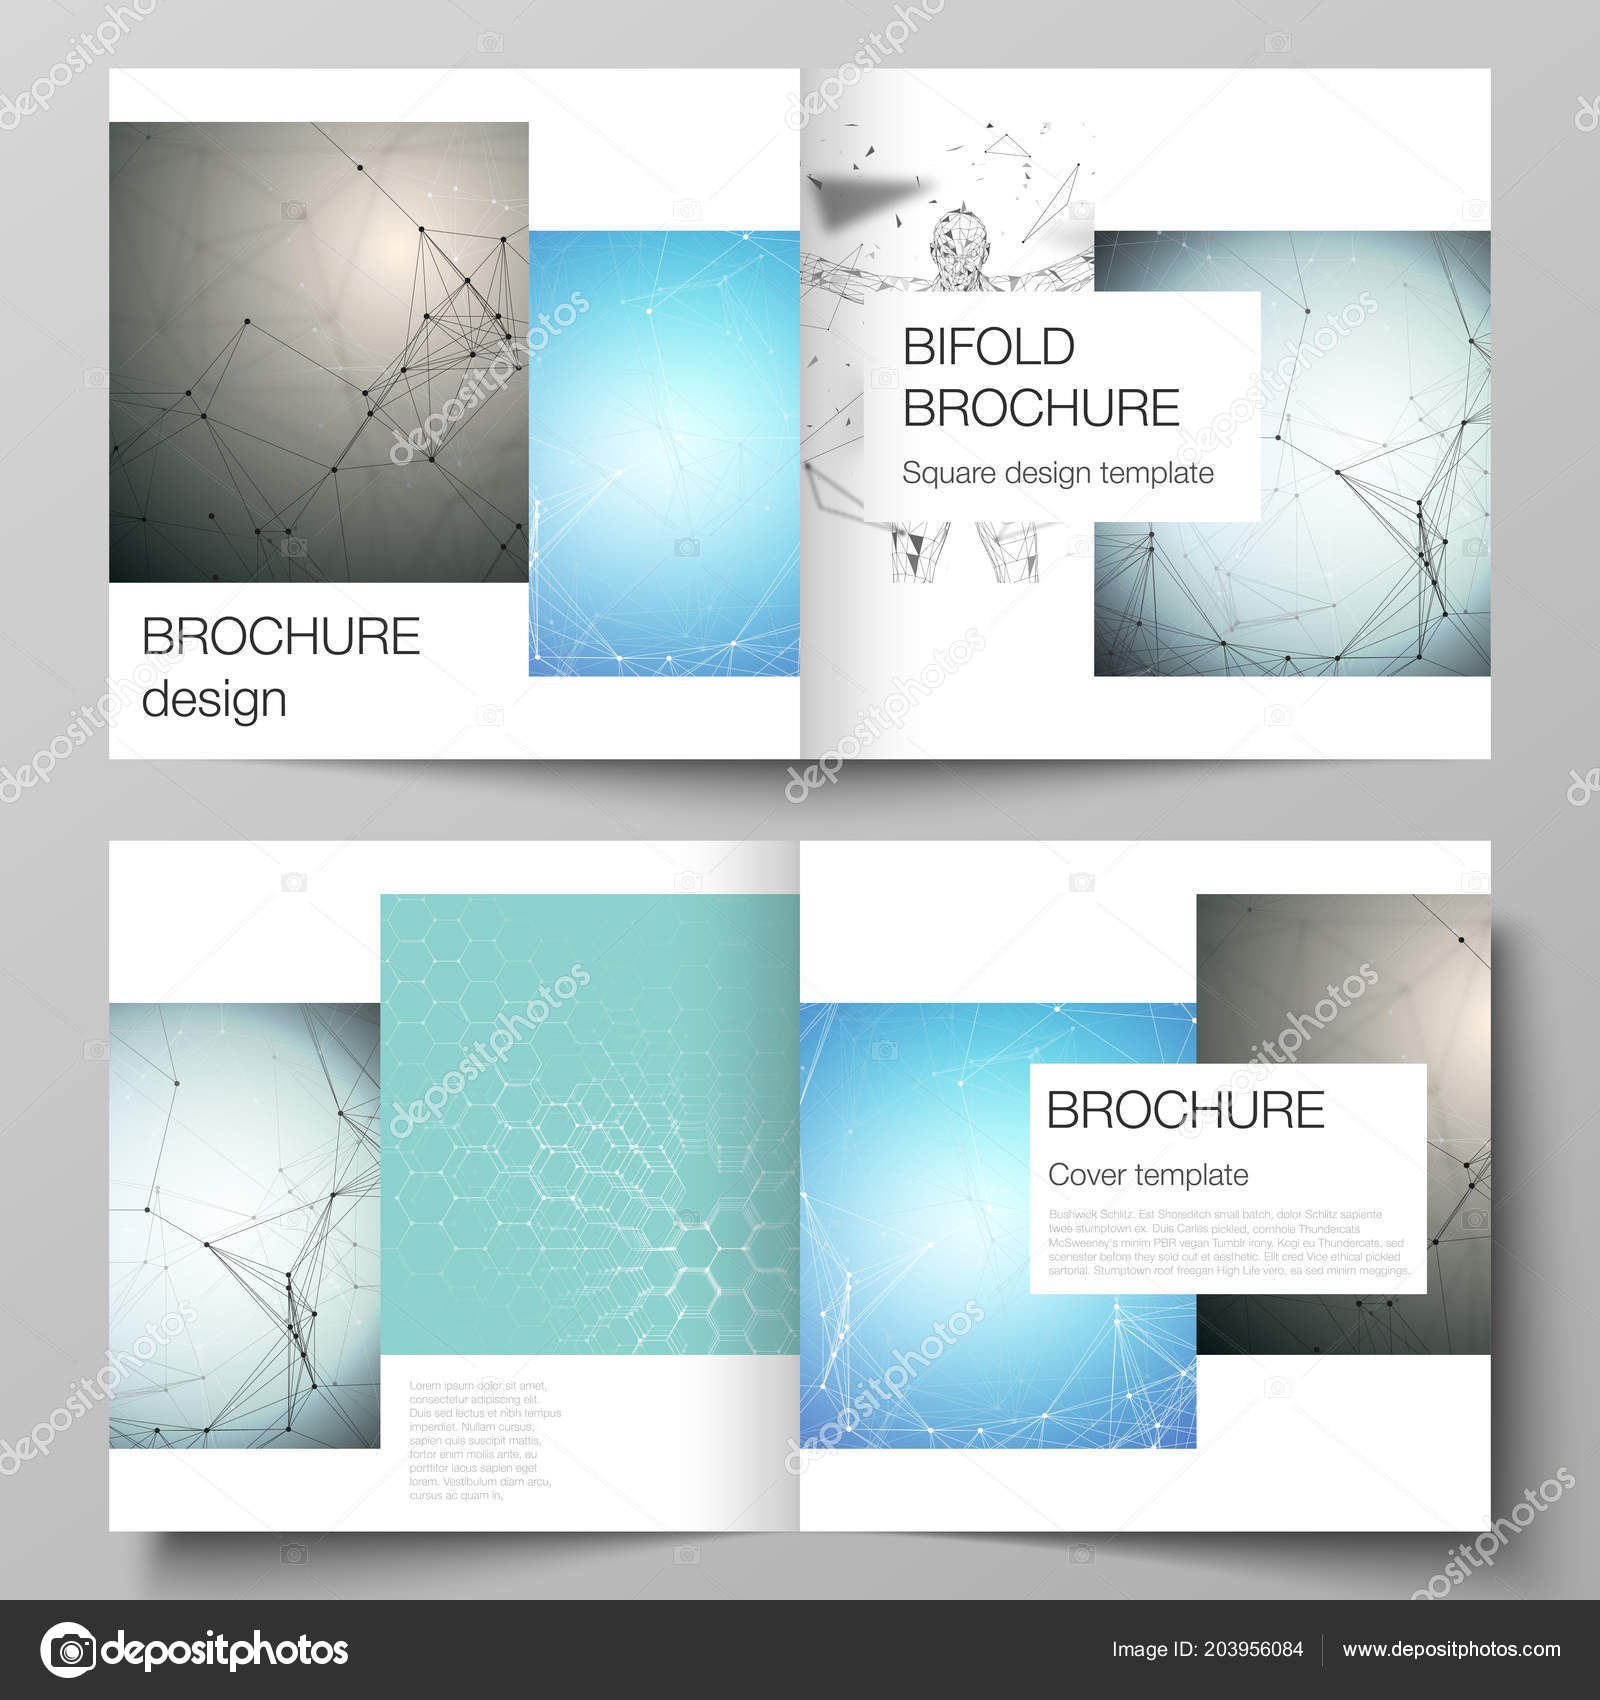 Vector Layout Of Two Covers Templates For Square Design Bifold